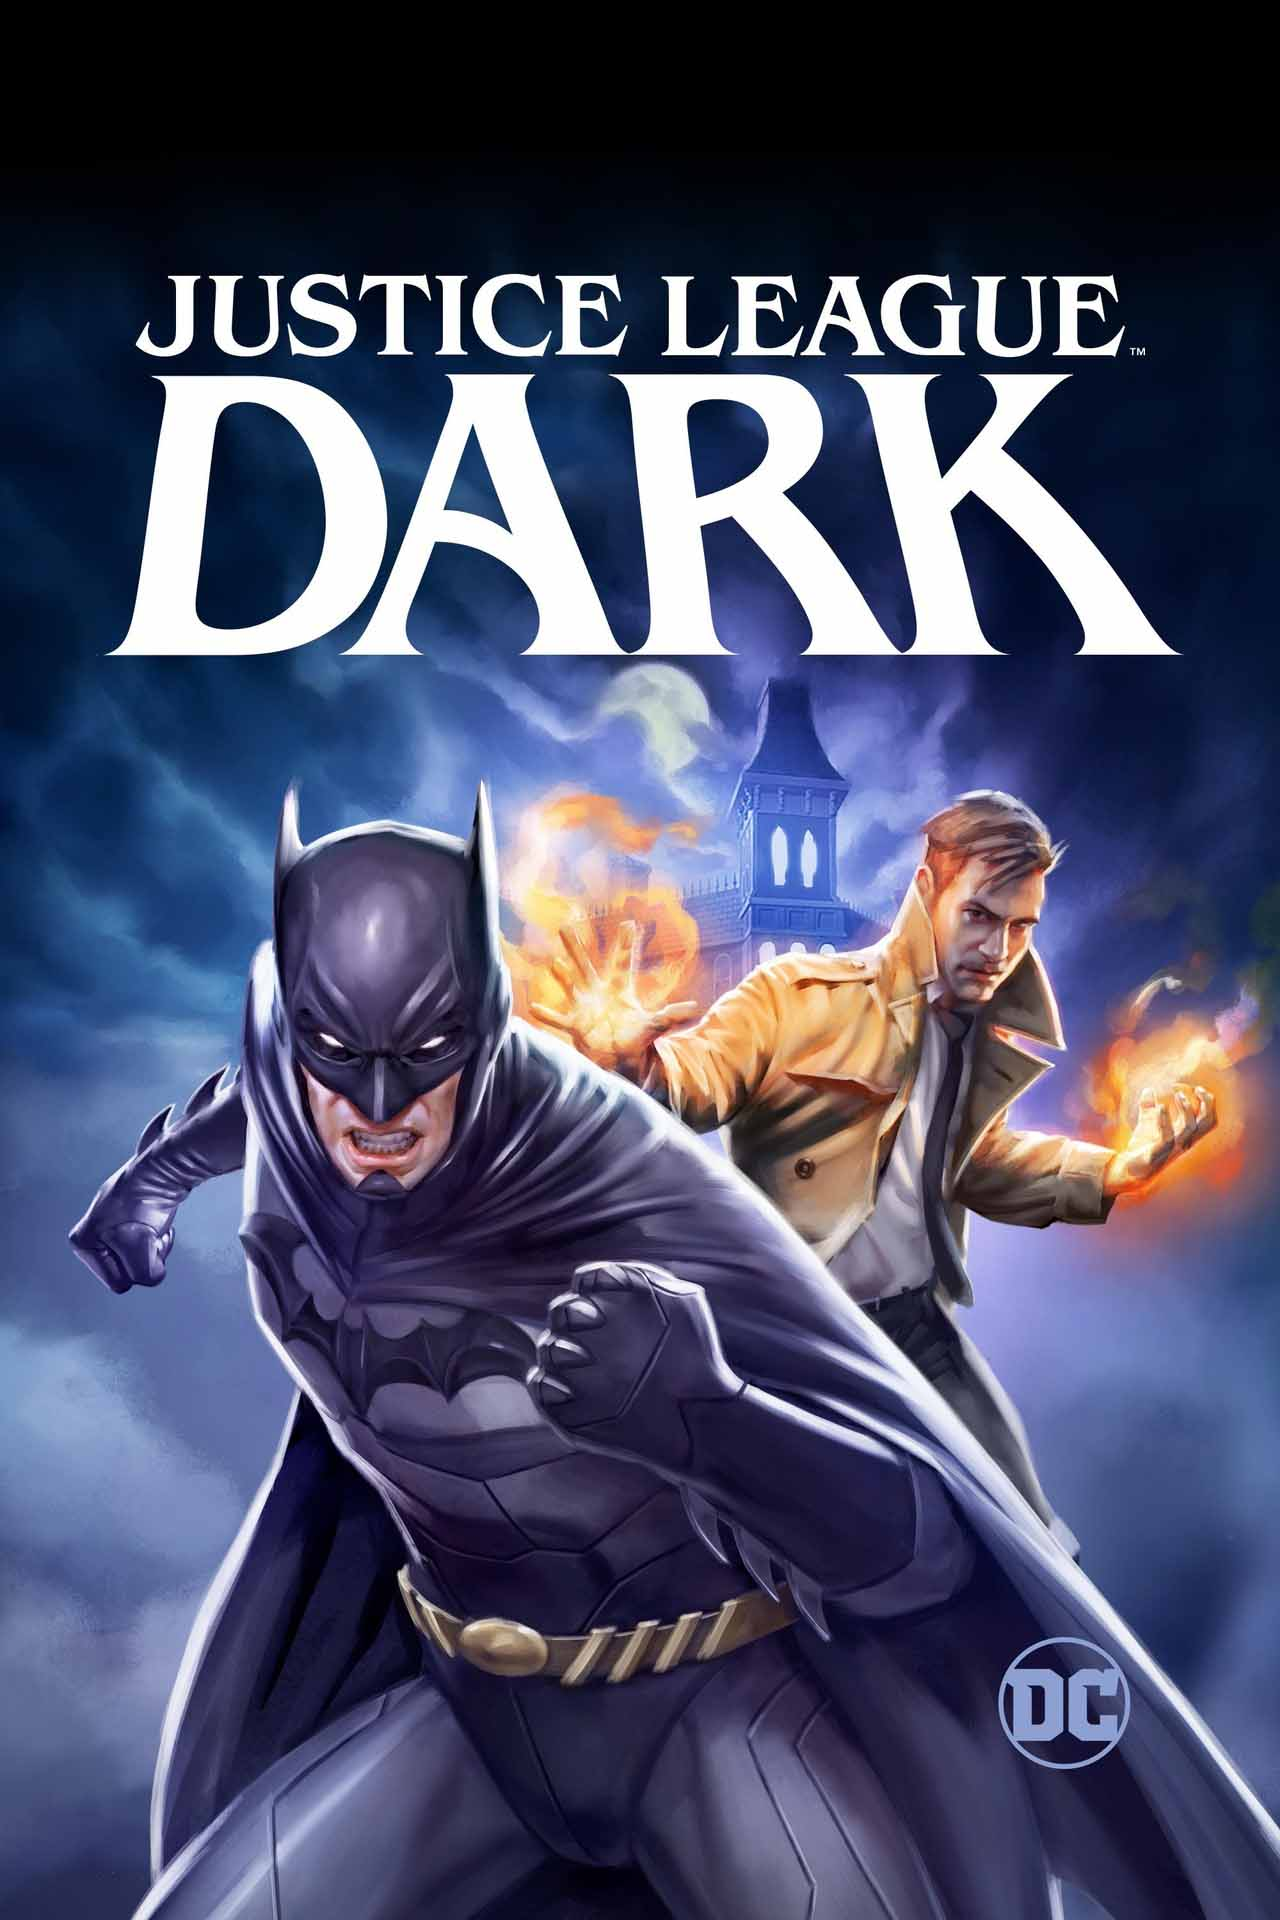 Justice league dark release date in Melbourne